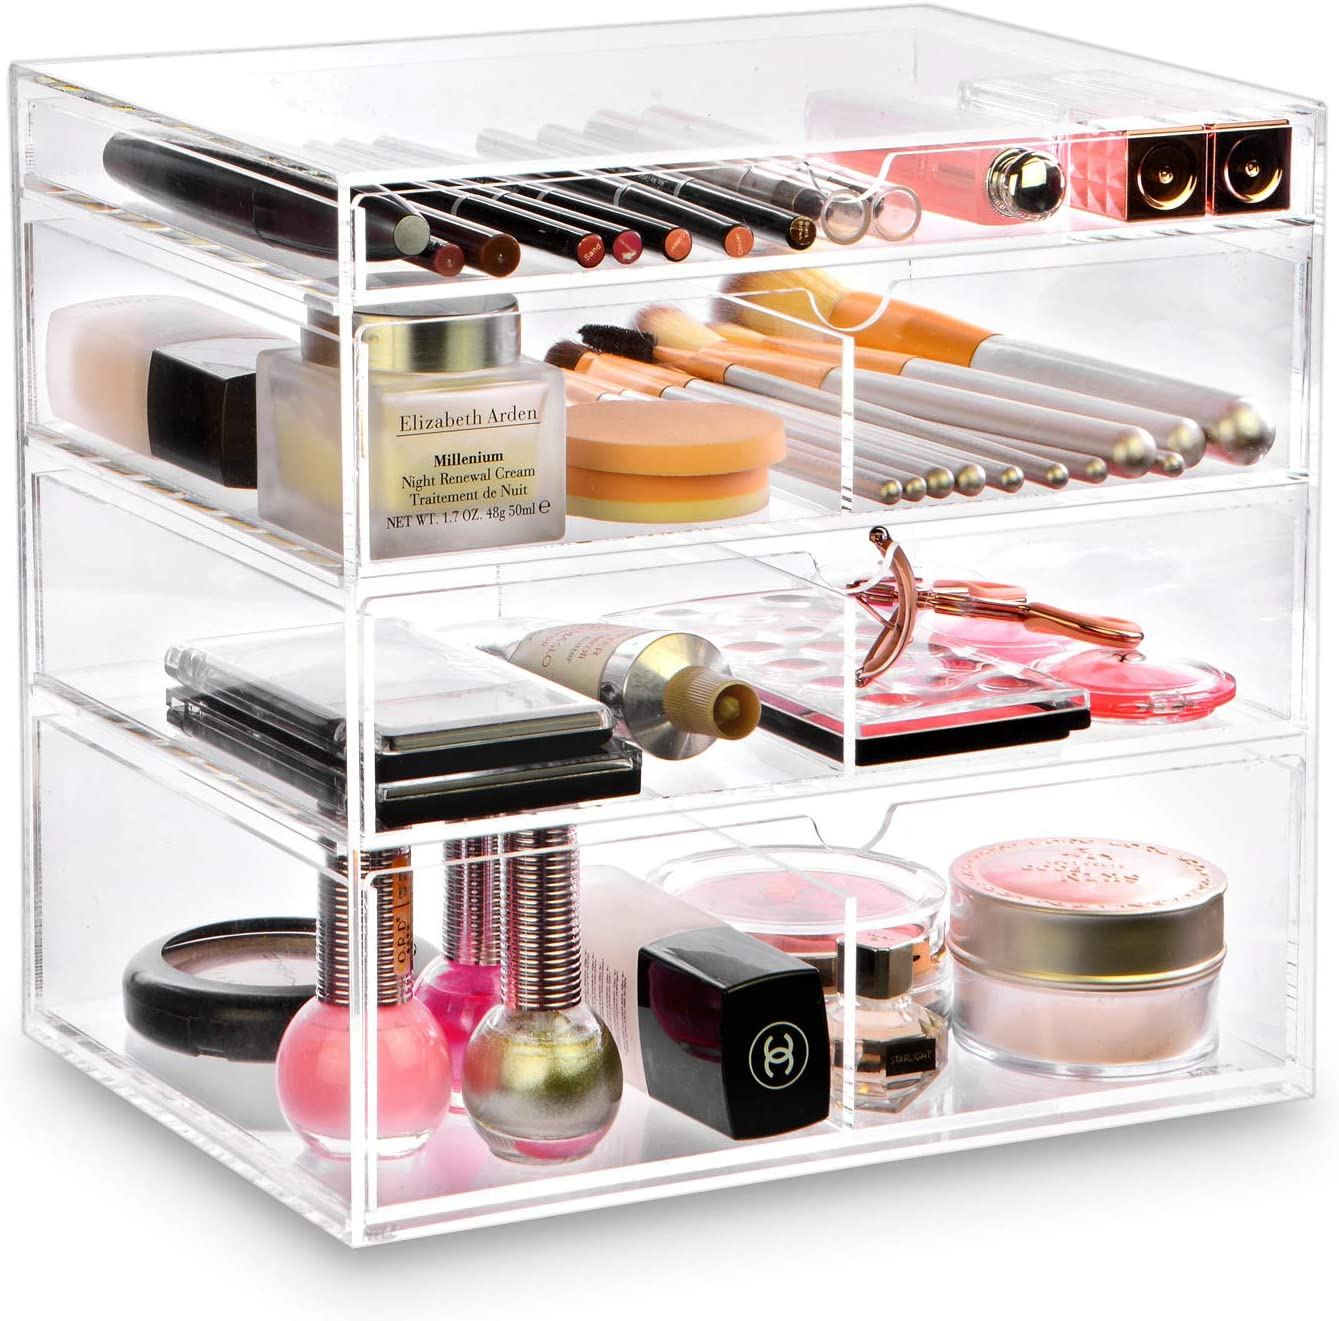 Ikee Design Acrylic Cosmetics Makeup and Jewelry Storage Case Display - Saving, Stylish Acrylic Bathroom Case Great for Lipstick, Nail Polish, Brushes, Jewelry and More (Clear)